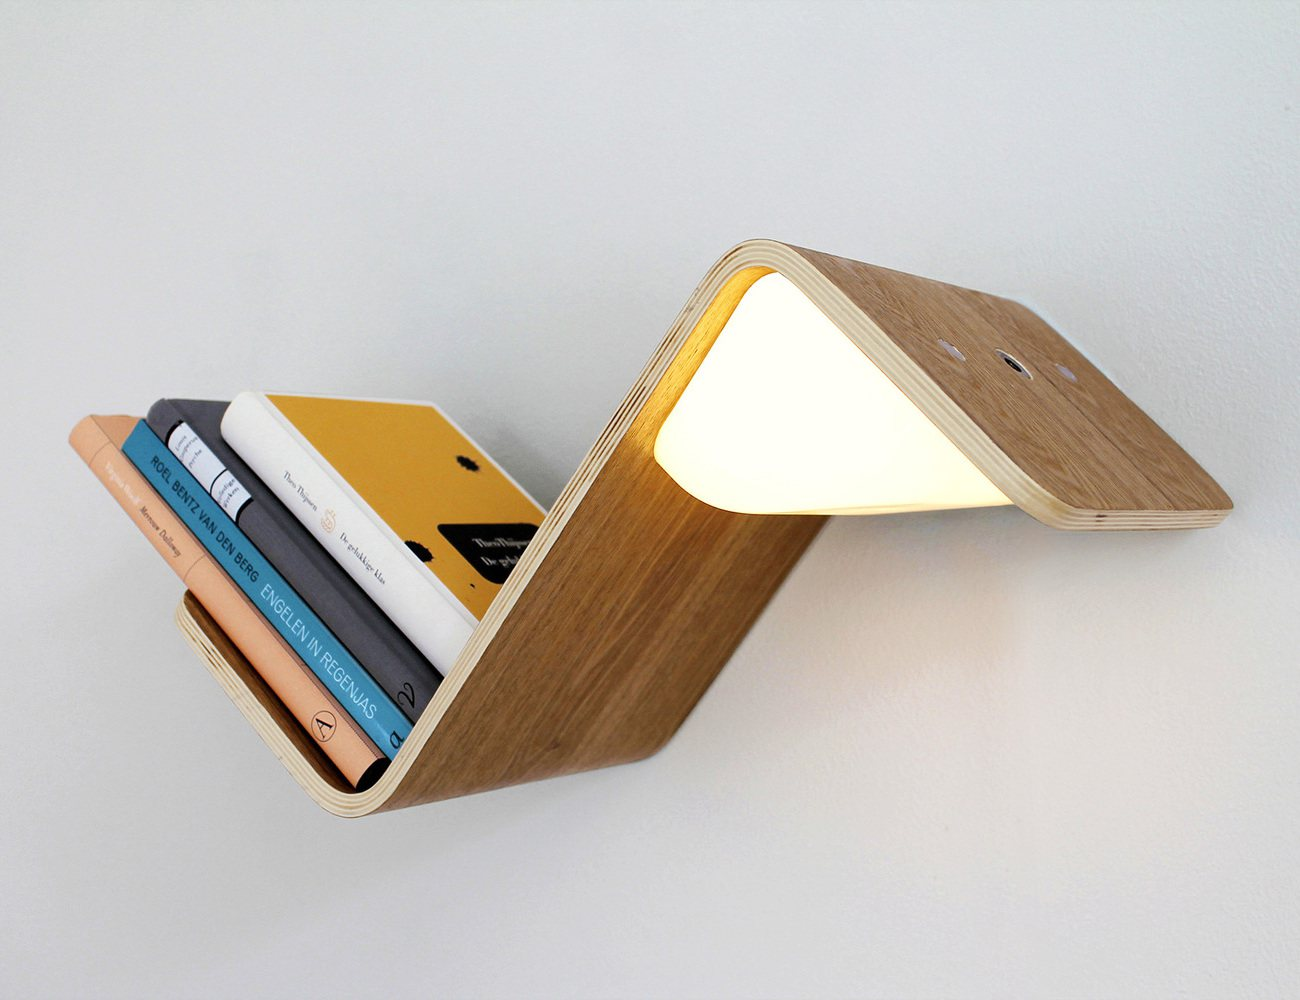 LiliLite – The All-in-One Book Lamp, Shelf, and Mark